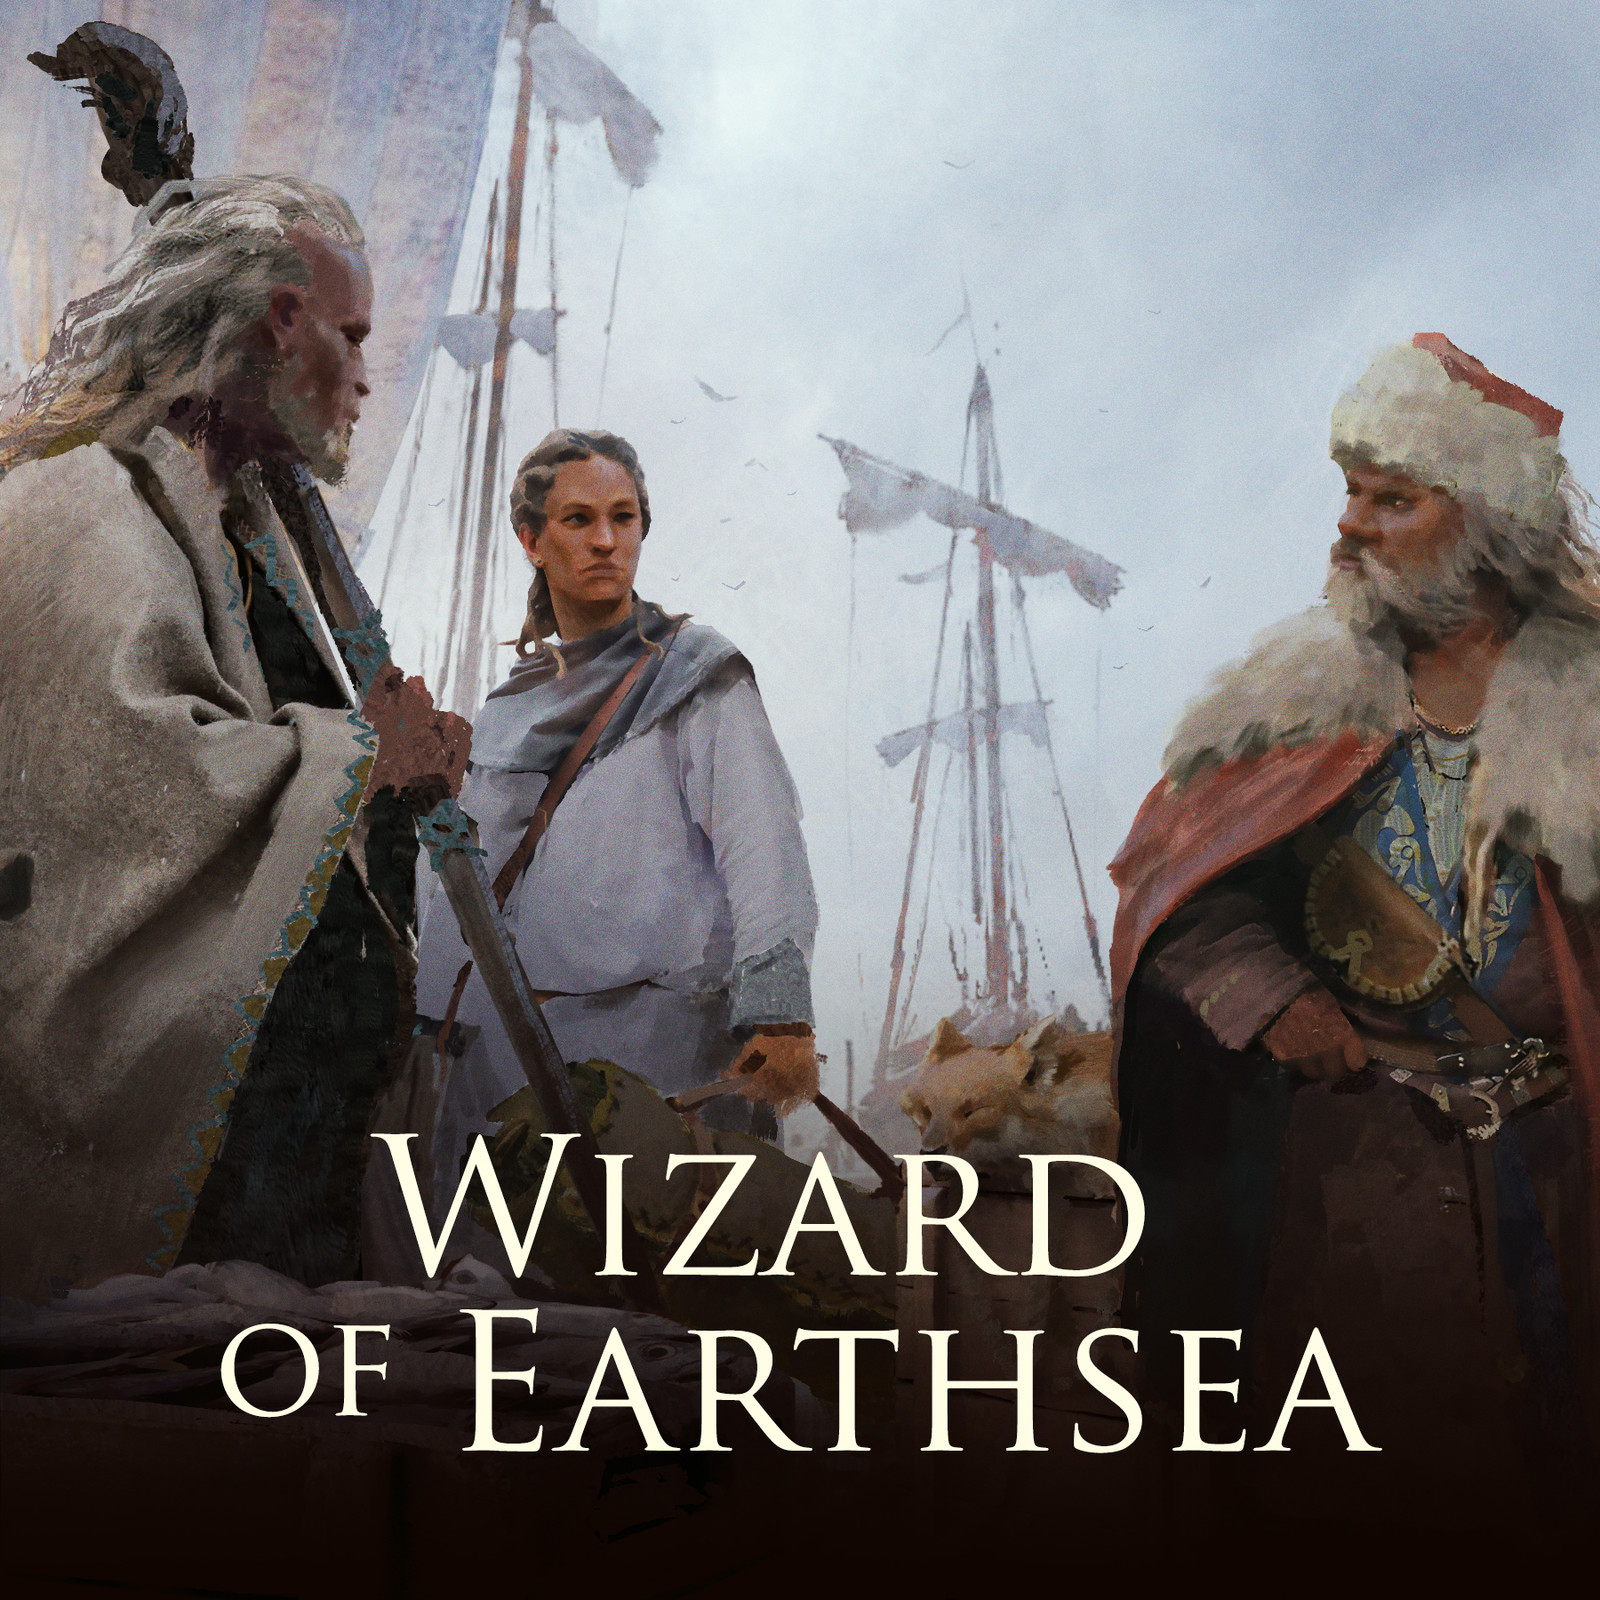 Wizard of Earthsea Pt. 1